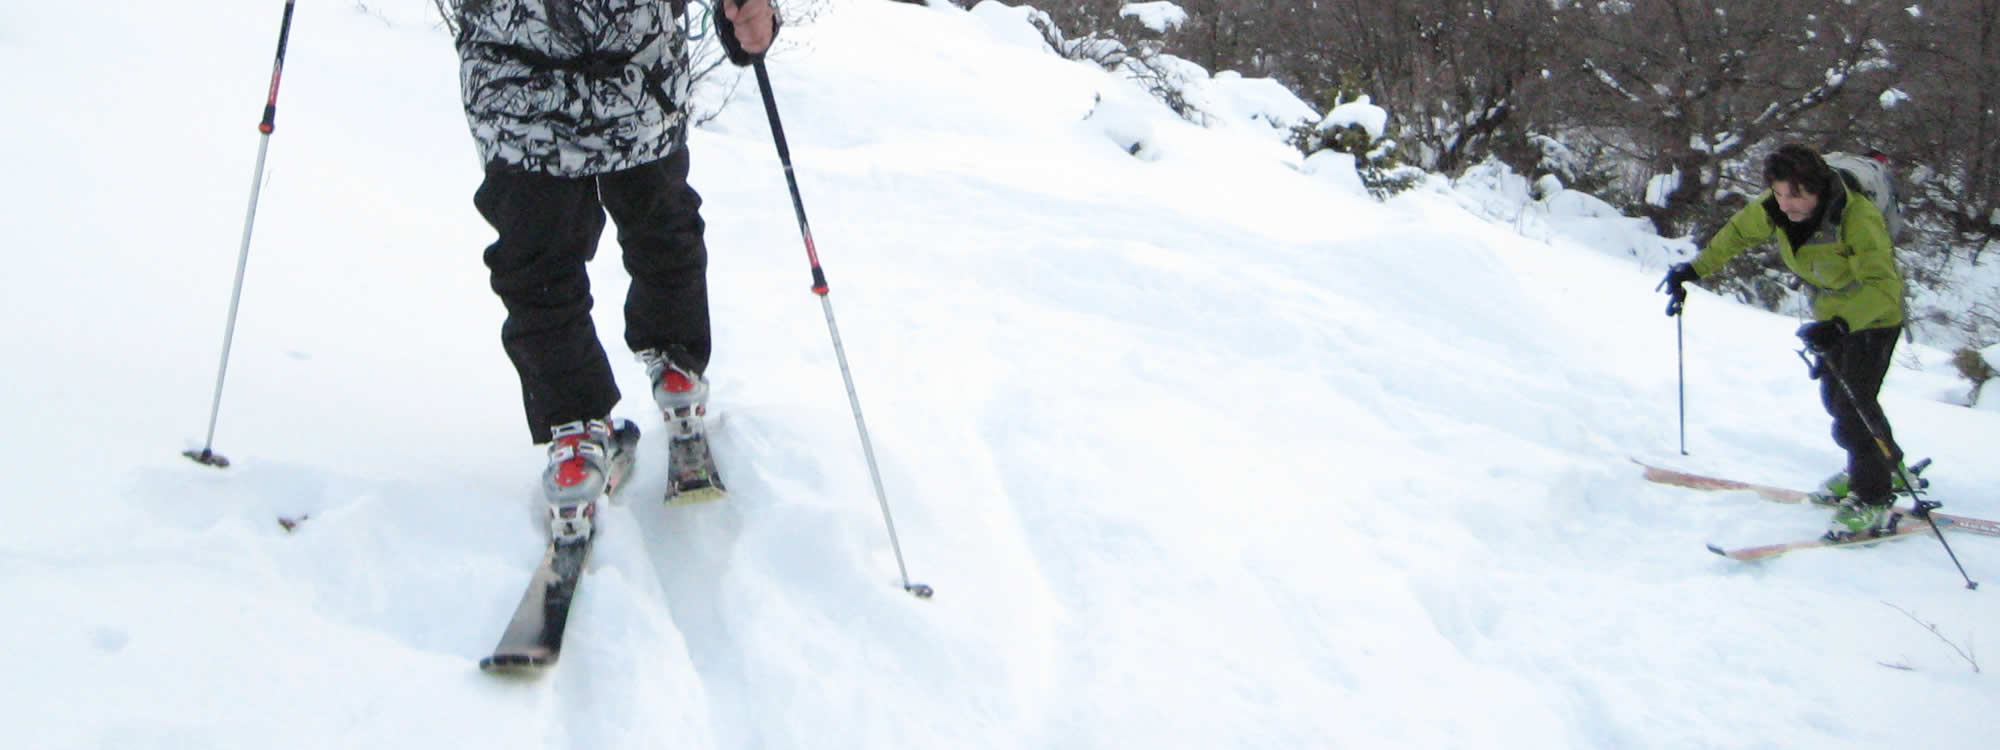 Come and Mountain (touring) ski in inaccessible slopes beneath the imposing towers of Astrakas alpine plateaus of Vikos-Aoos Geopark, Pindus